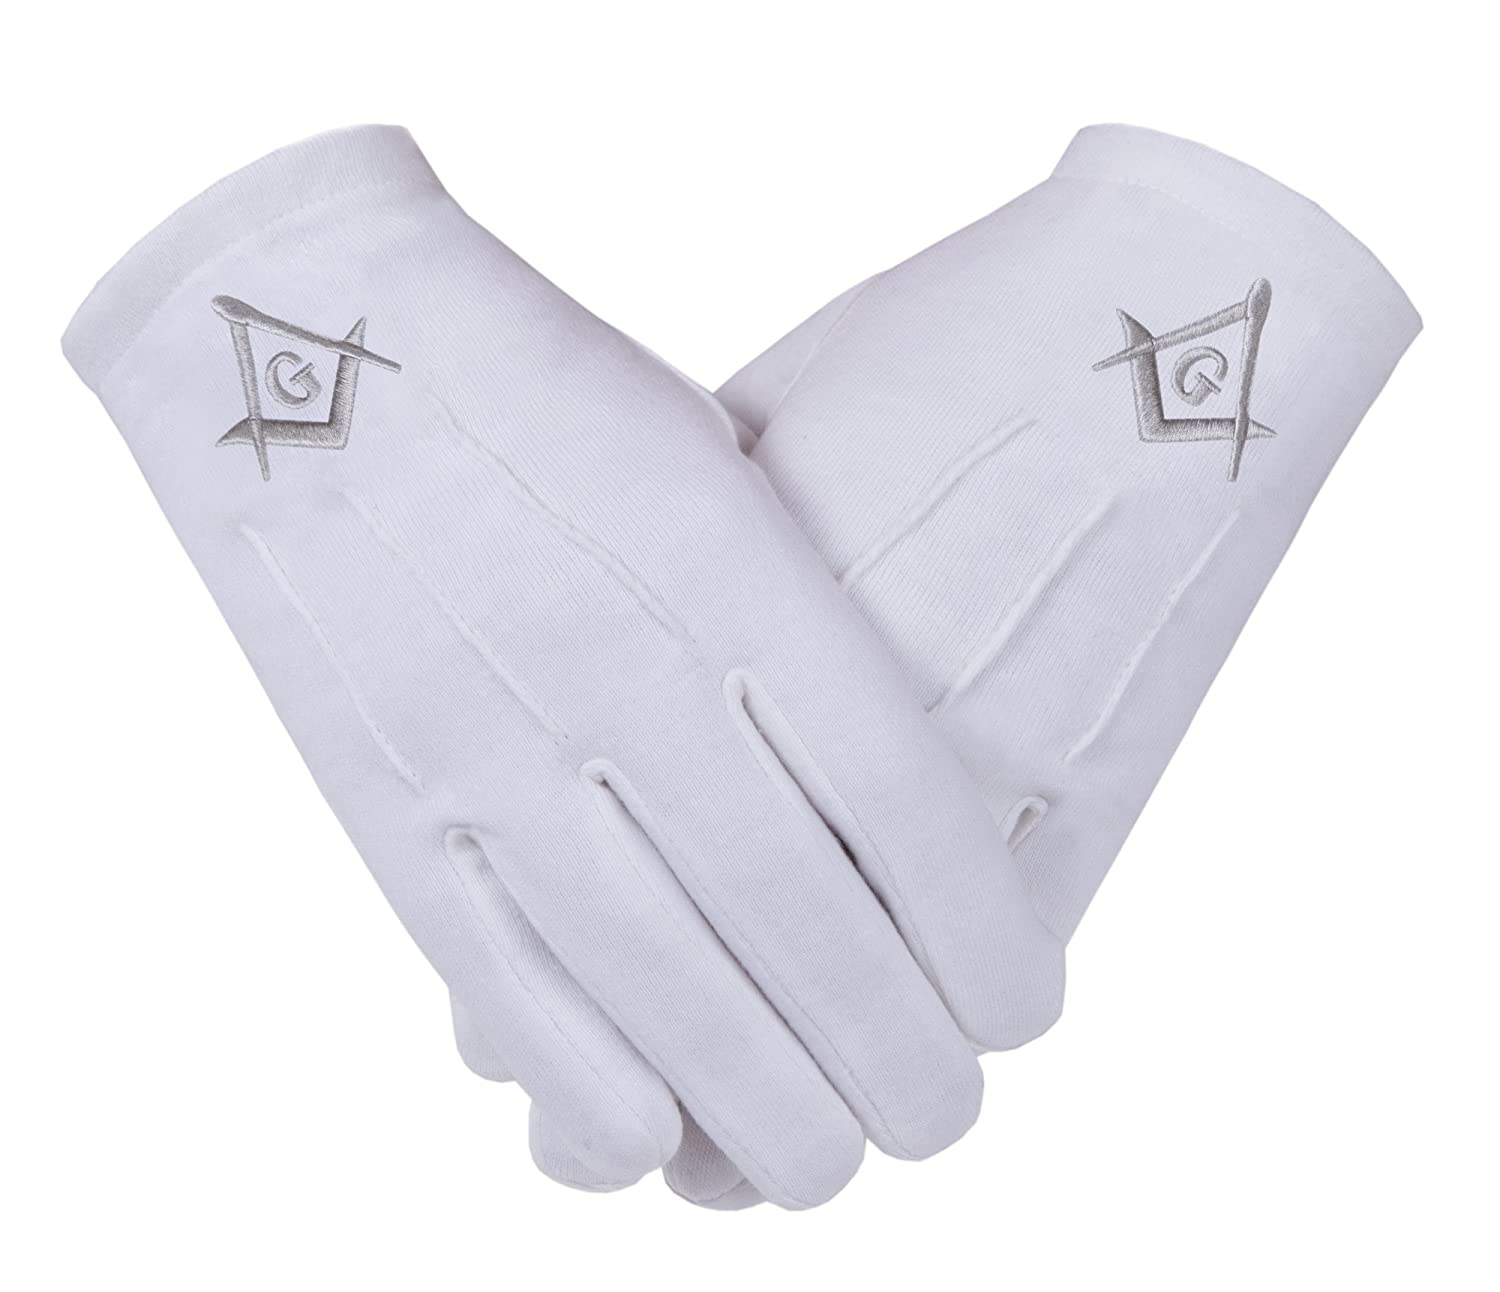 Freemasons Masonic Gloves in Cotton in Silver Embroidered Square Compass and G SC& G